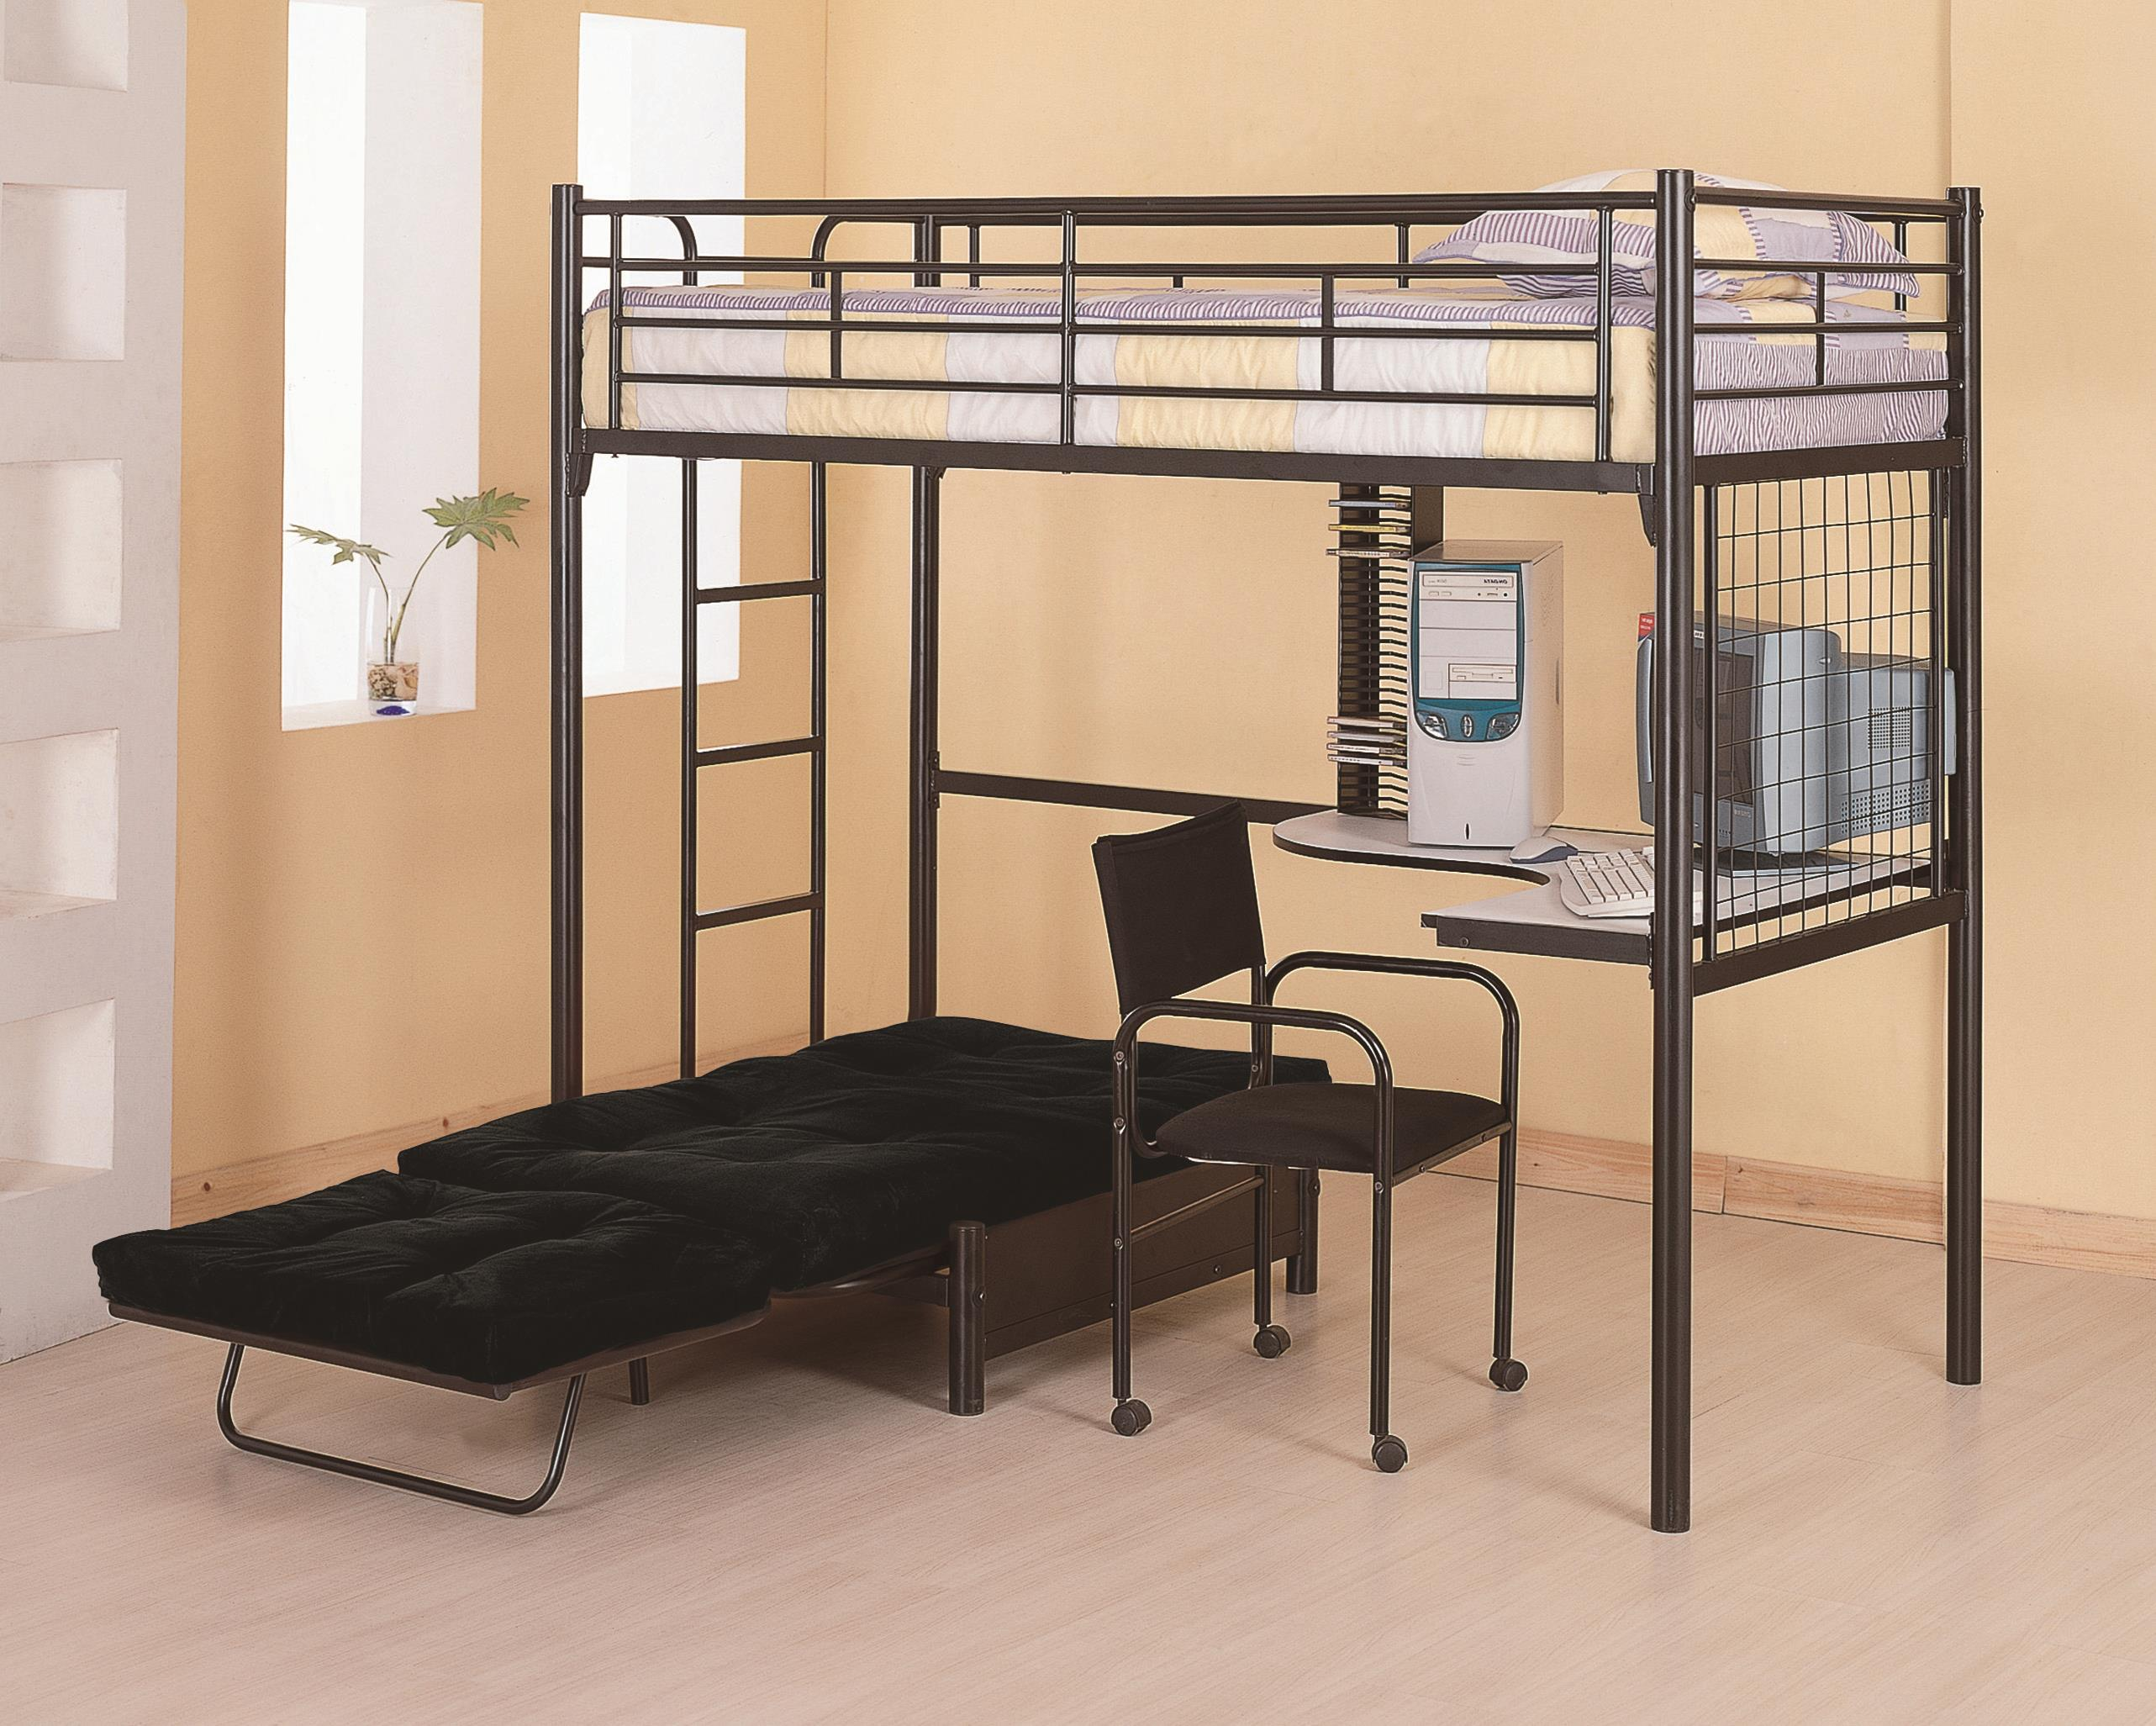 Coaster Bunks Twin Loft Bunk Bed - Item Number: 2209+2335M